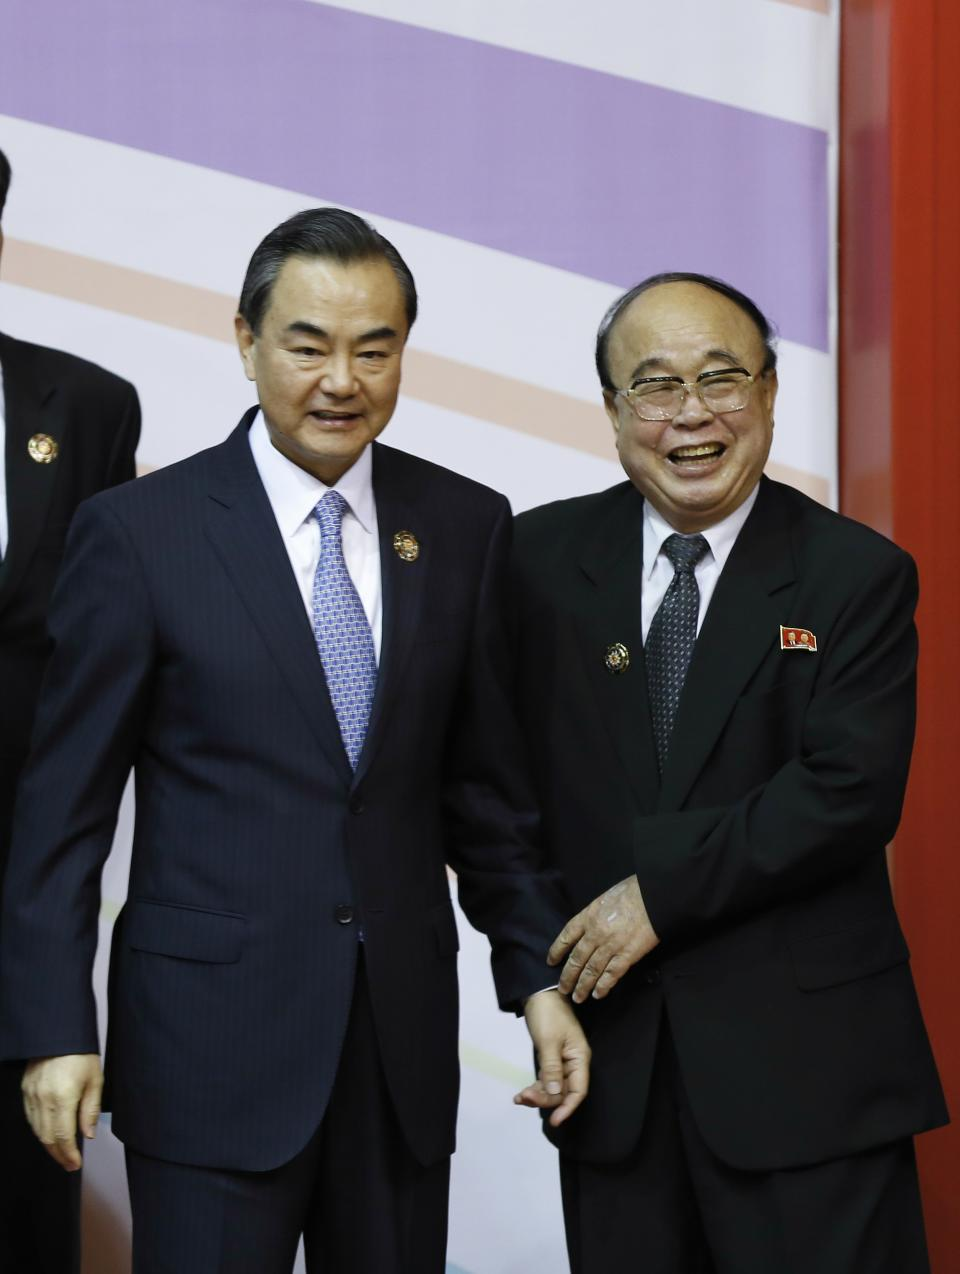 China's Foreign Minister Wang Yi, left, and North Korea's Foreign Minister Pak Ui Chun pose during a group photo session for ASEAN Regional Forum Foreign Ministers' Meeting in Bandar Seri Begawan, Brunei, Tuesday, July 2, 2013. (AP Photo/Vincent Thian)